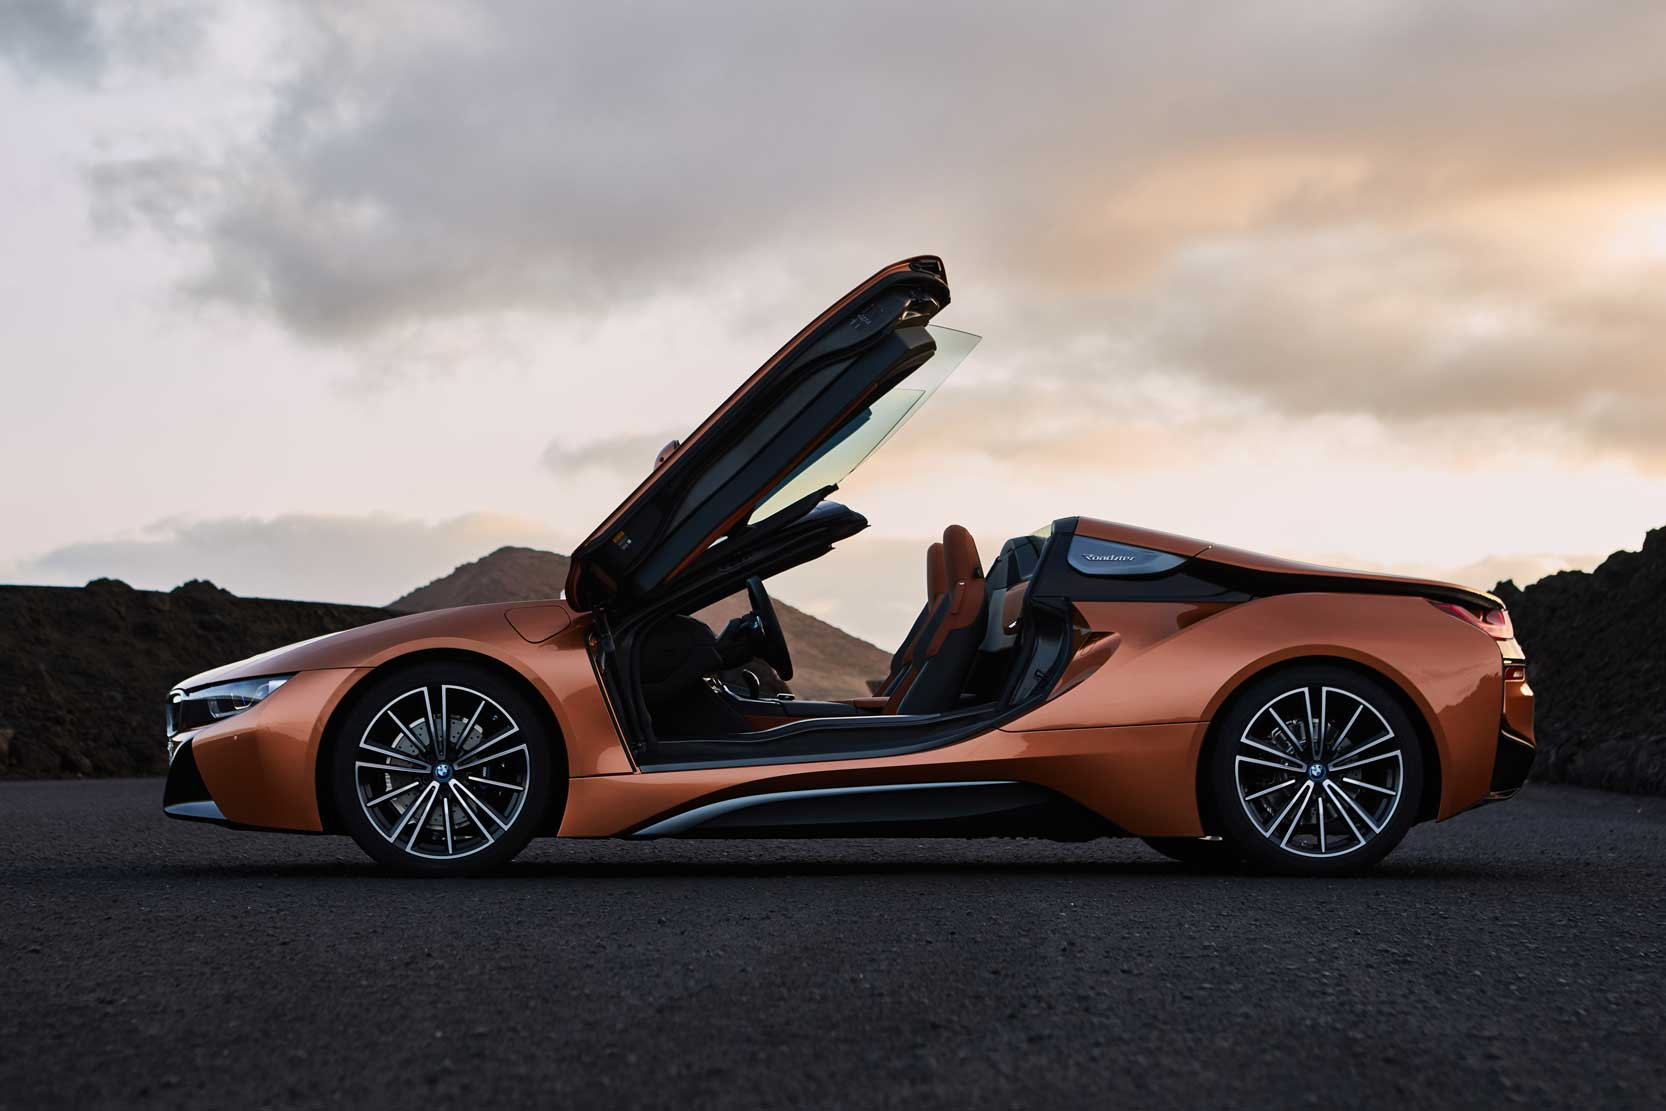 Exterieur_Bmw-i8-Roadster_8